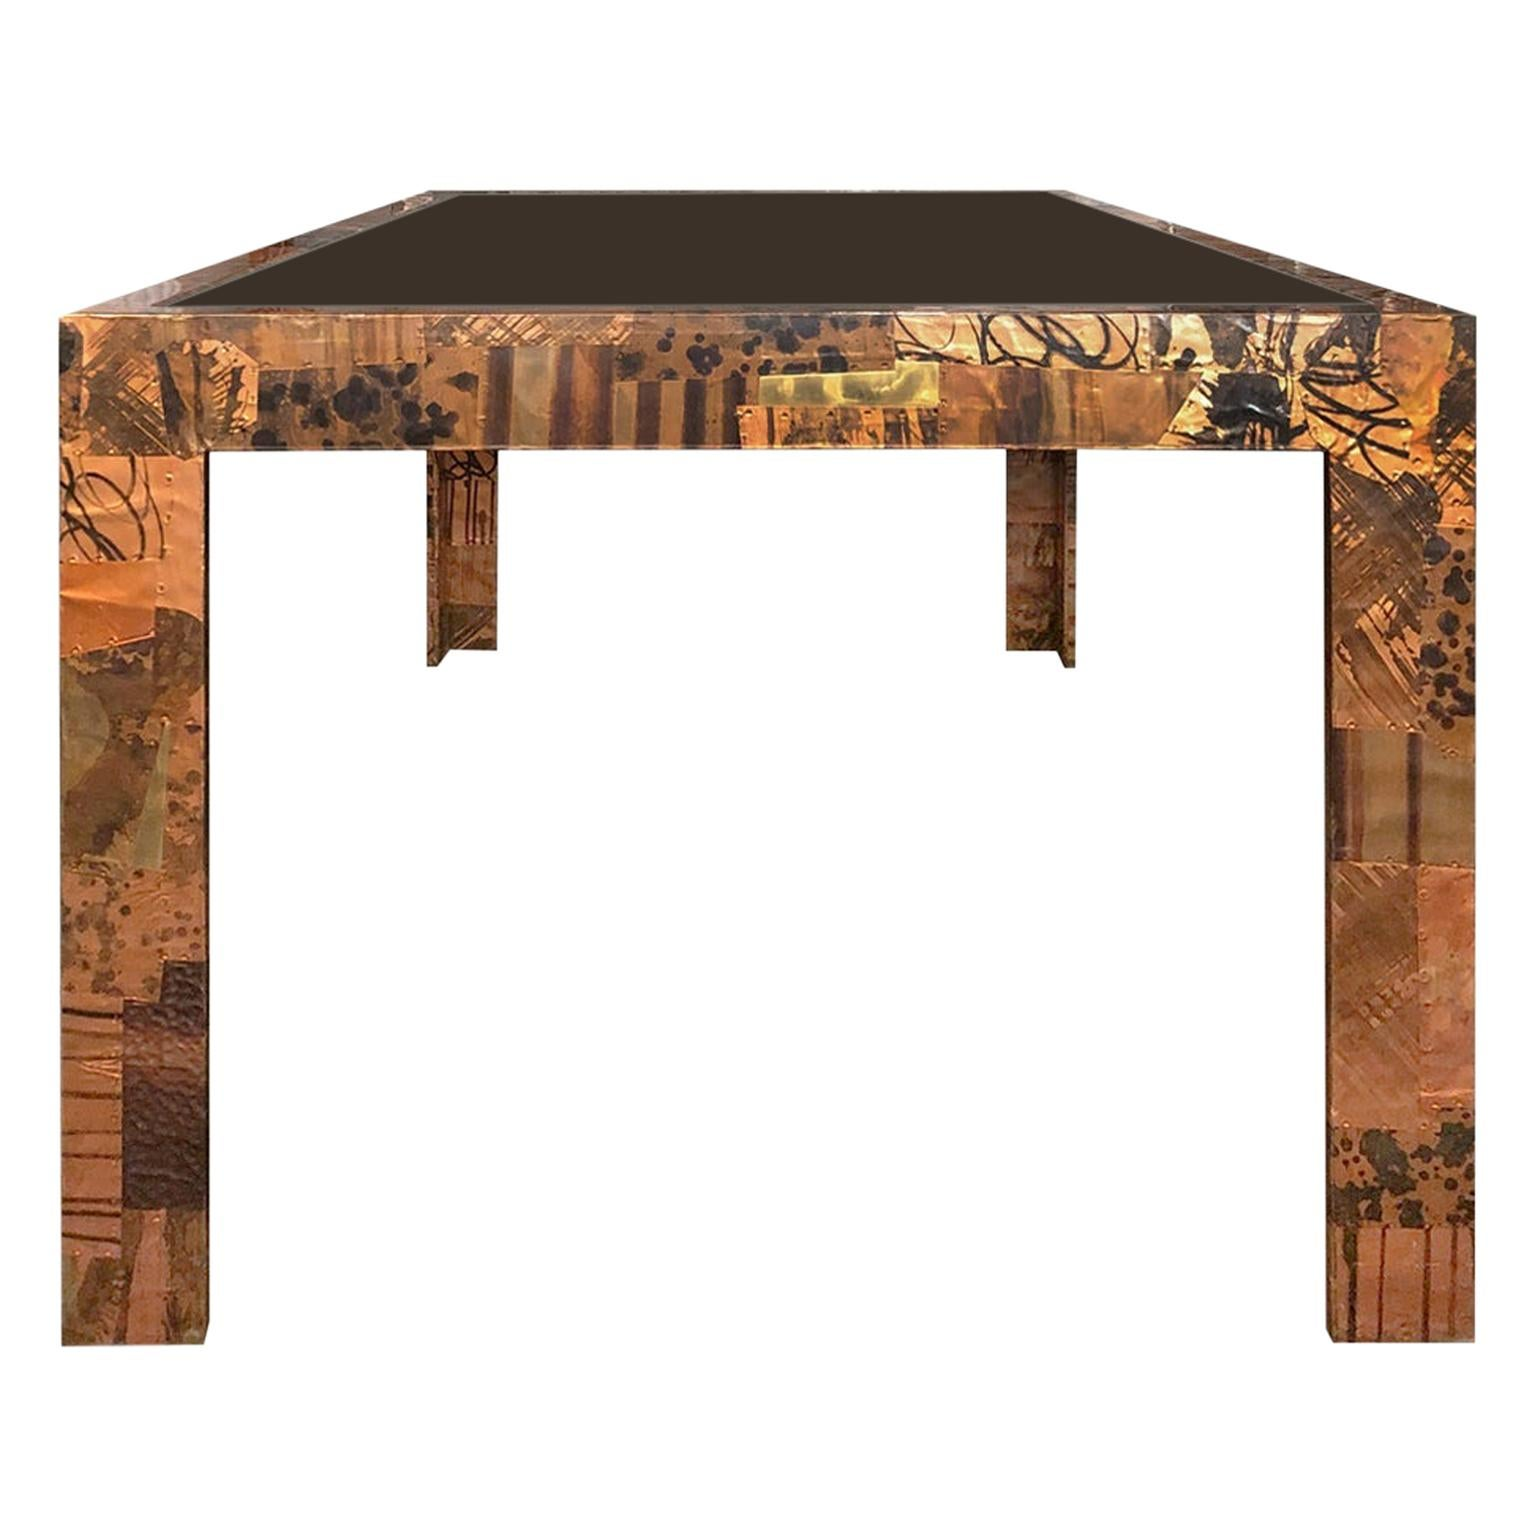 1970s Paul Evans Style Patchwork Metal Dining Table with Smoked Glass Top